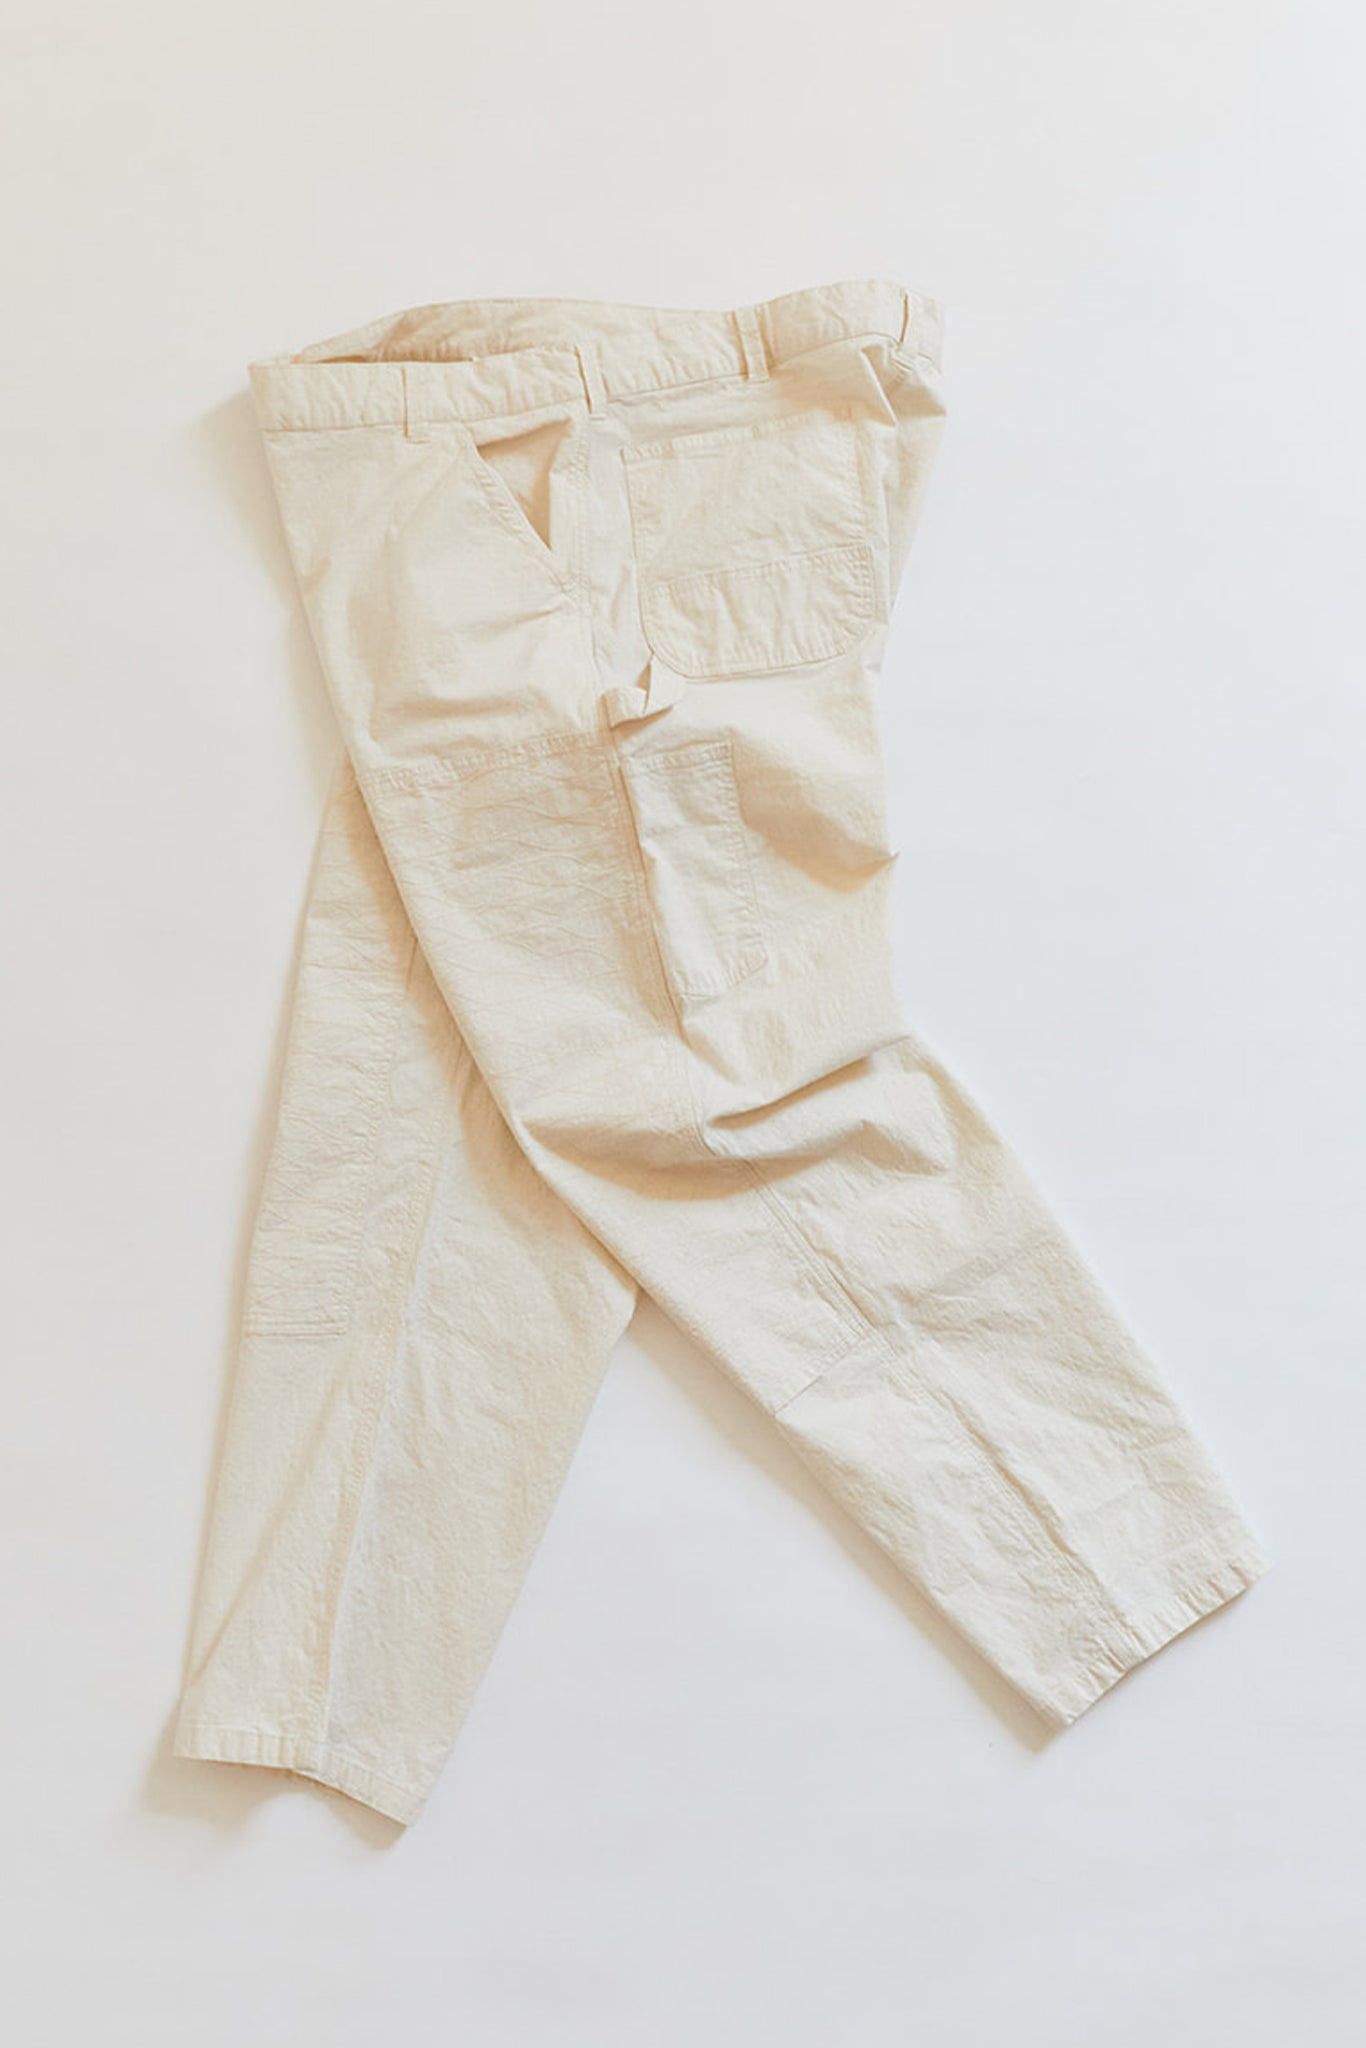 STUDIO DOUBLE KNEE PANT - UNDYED RIPSTOP